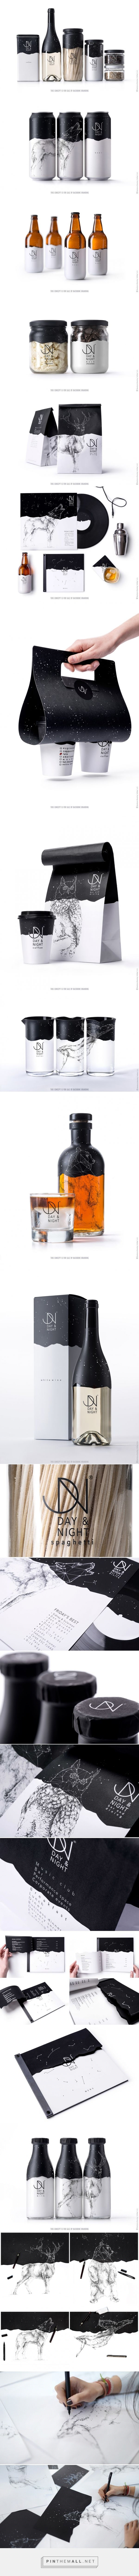 Day & Night packaging designed by Backbone Branding (Armenia)…